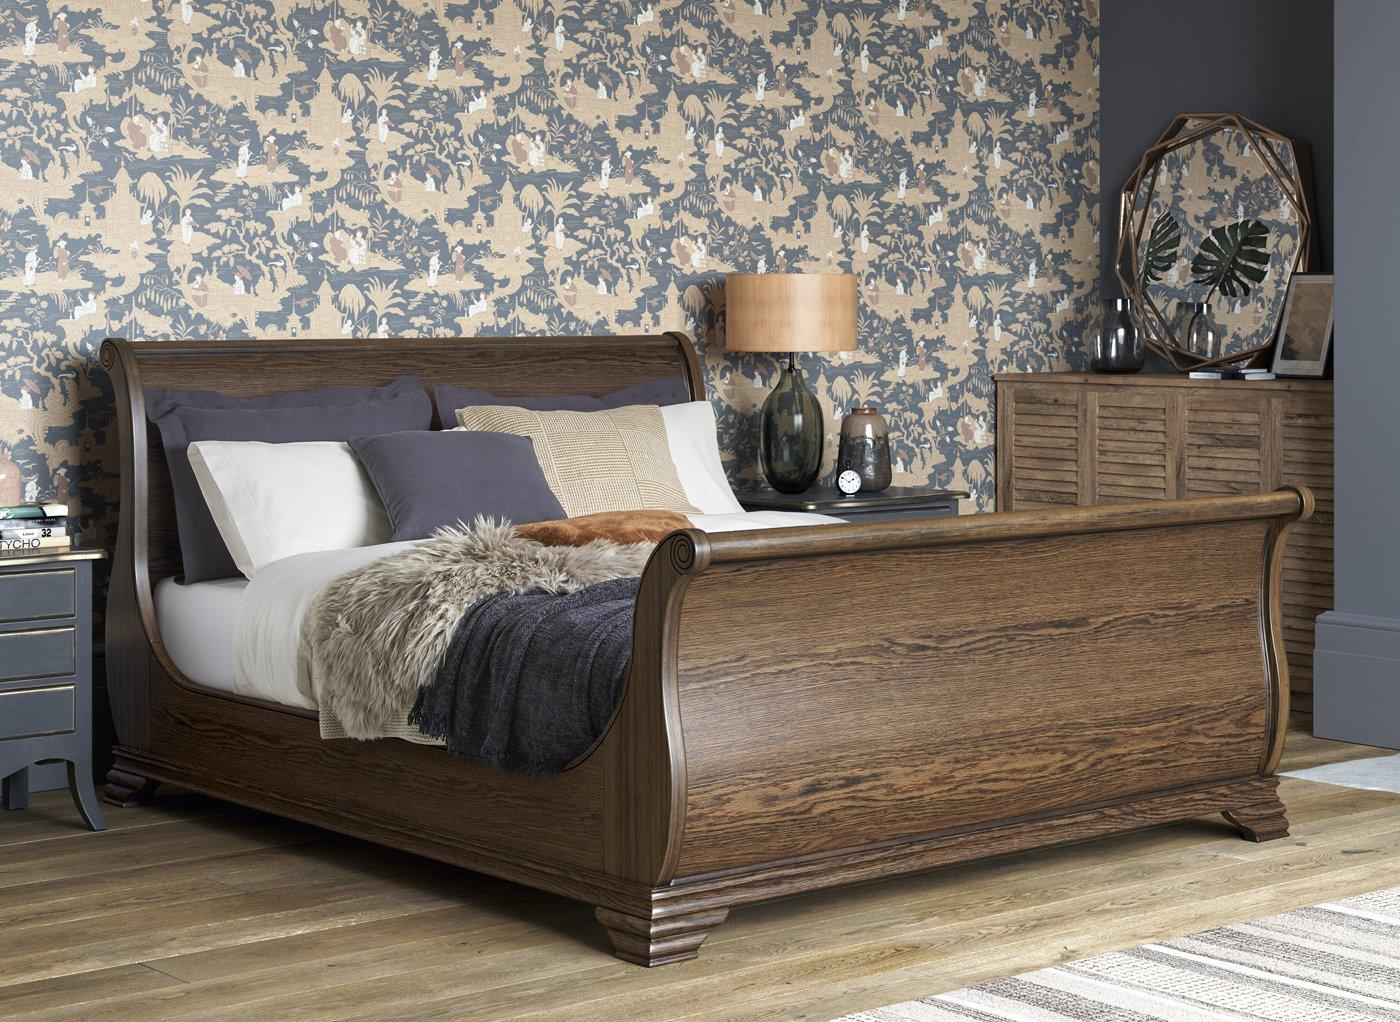 otis-wooden-sleigh-bed-frame